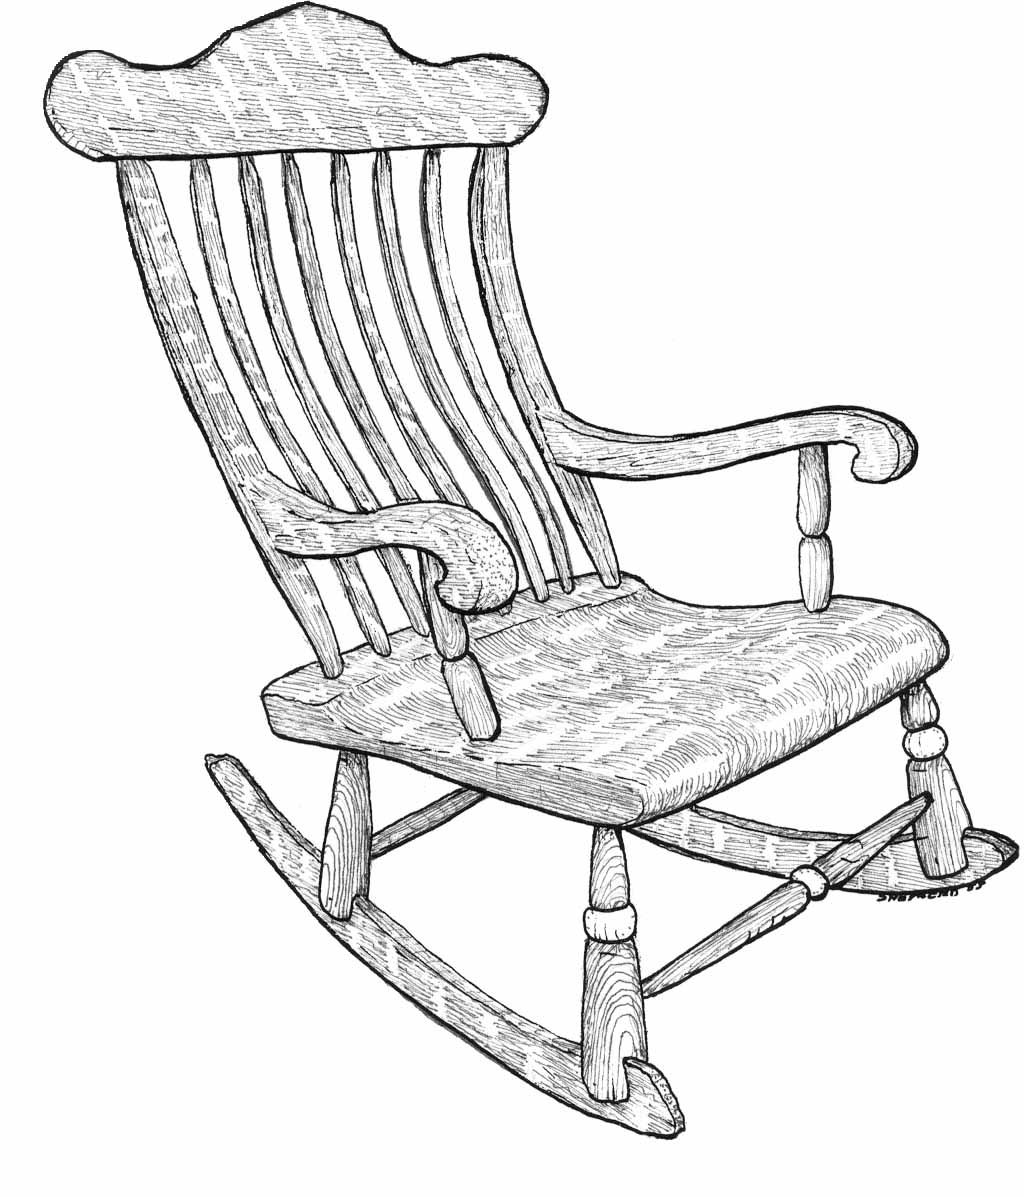 rocking chair drawing - Google Search | Personal ...